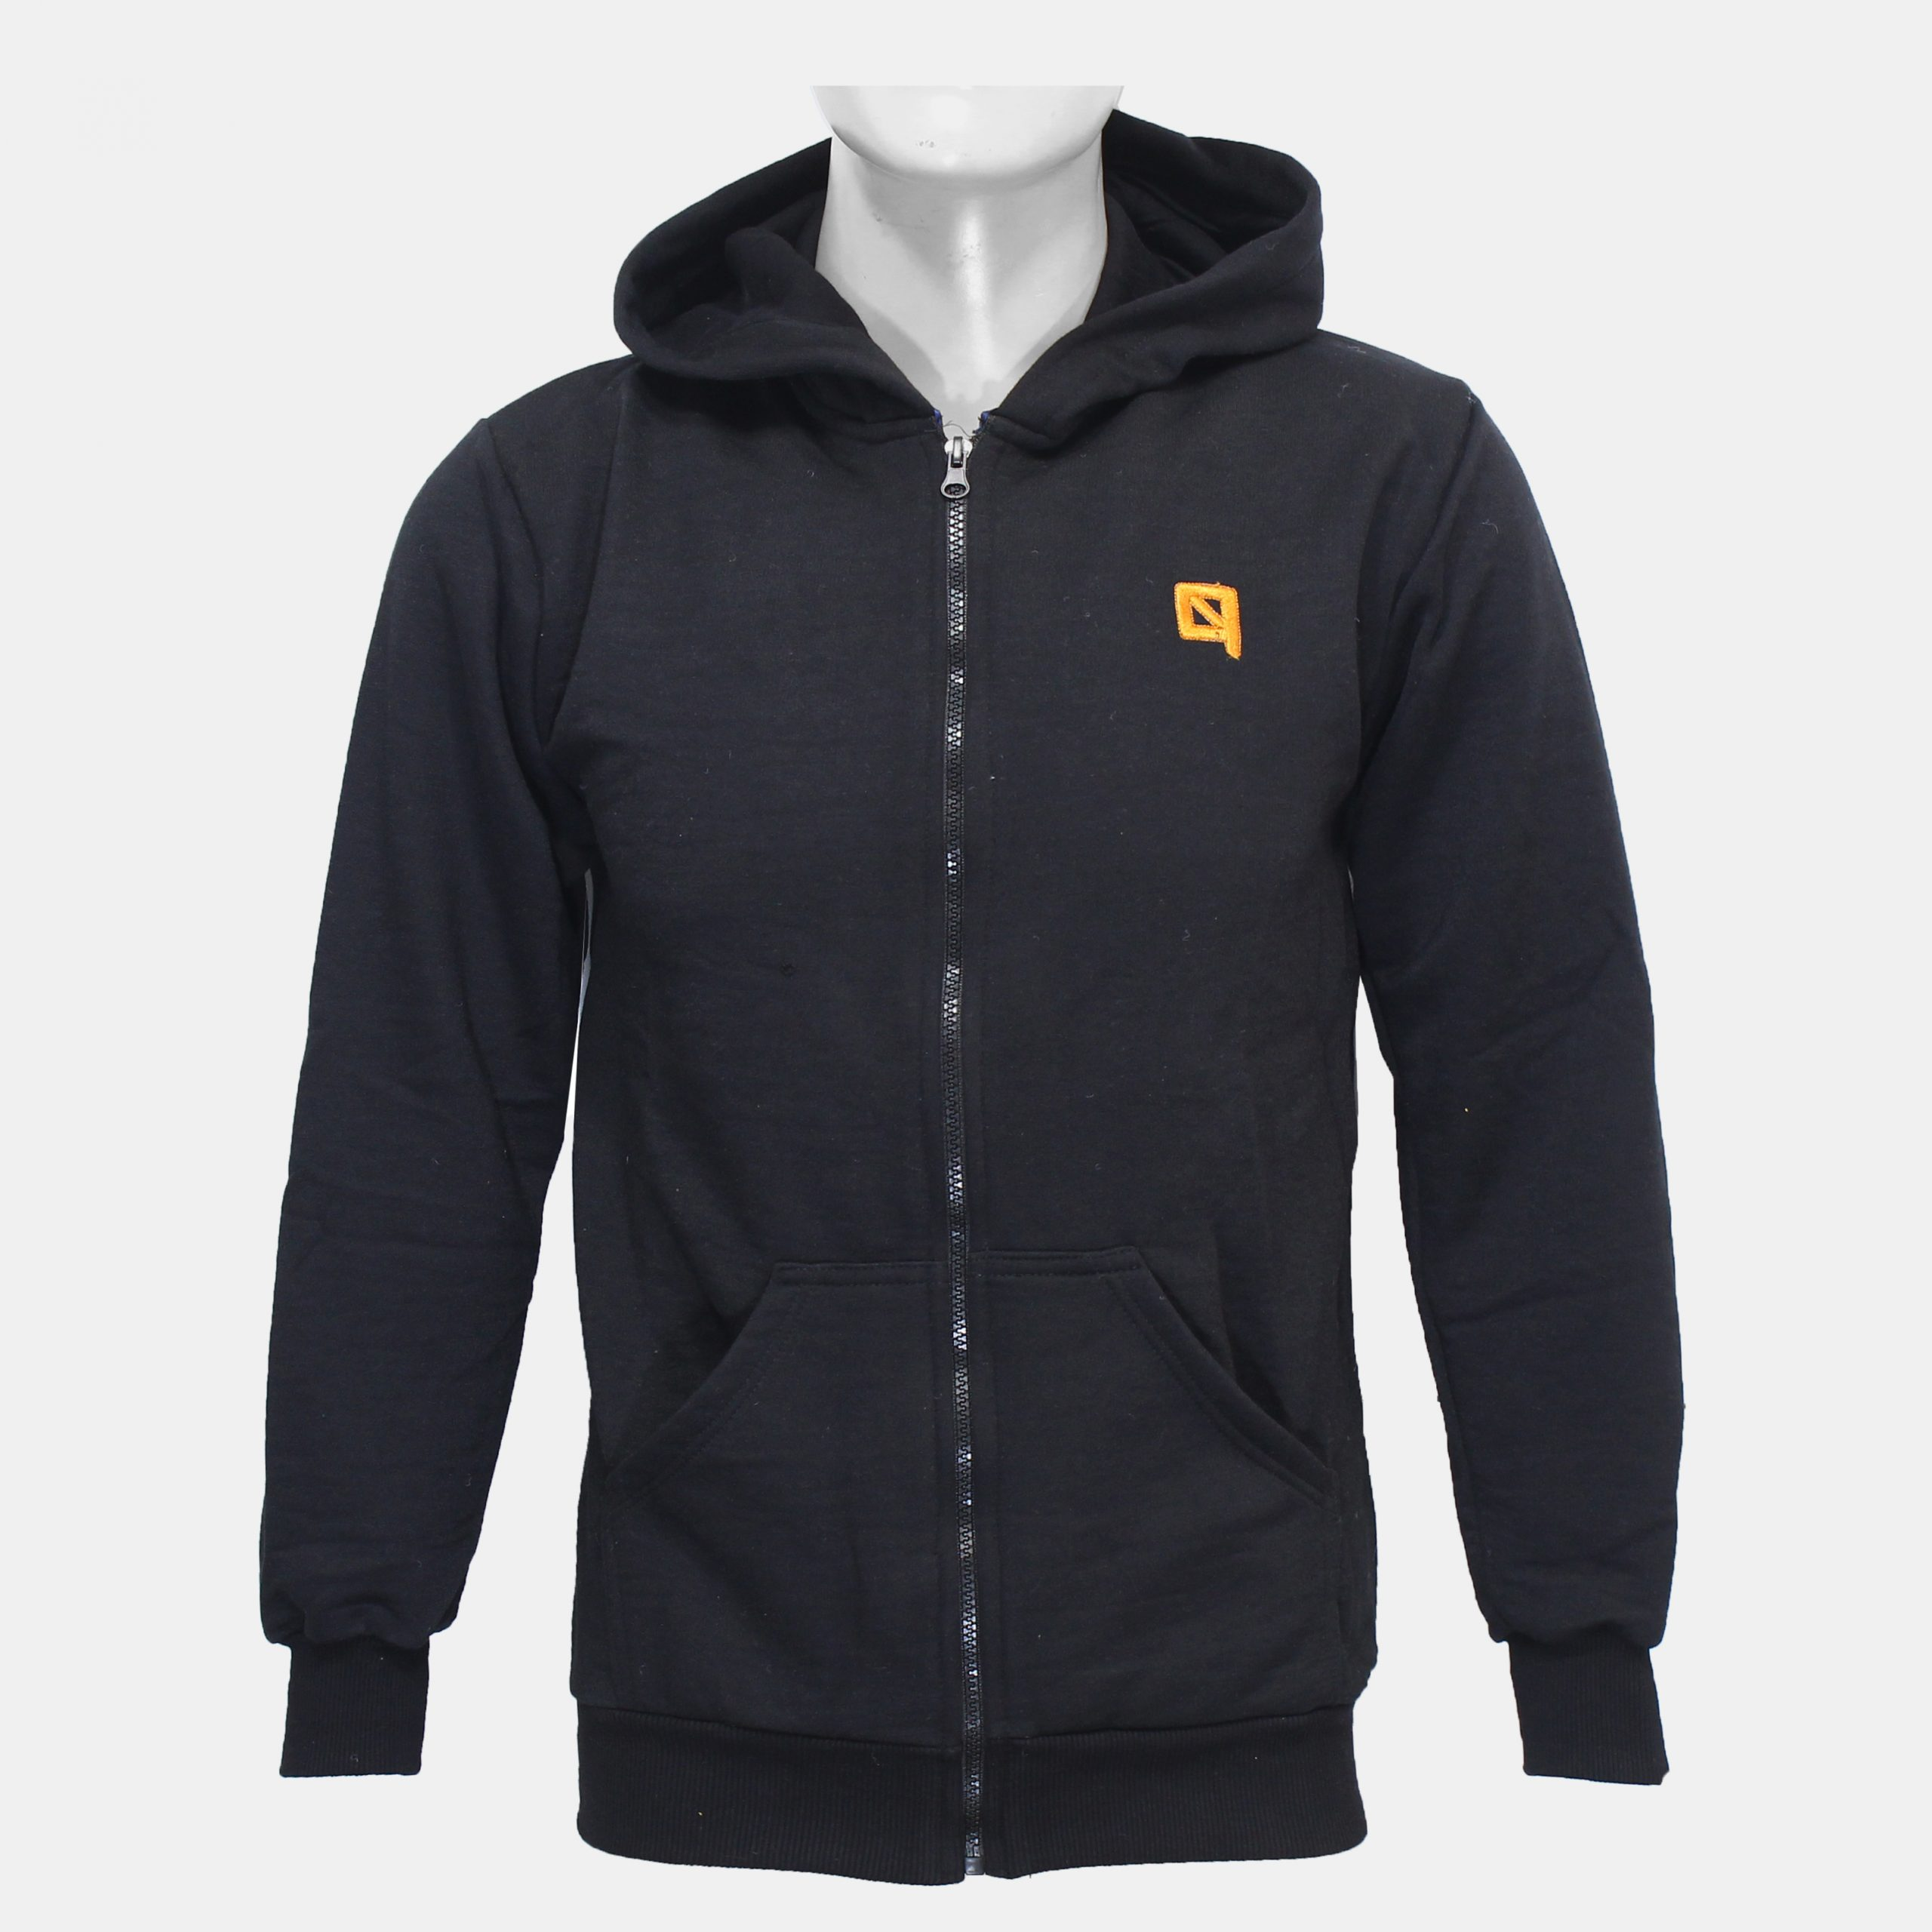 Zip Up Hoodie For Men